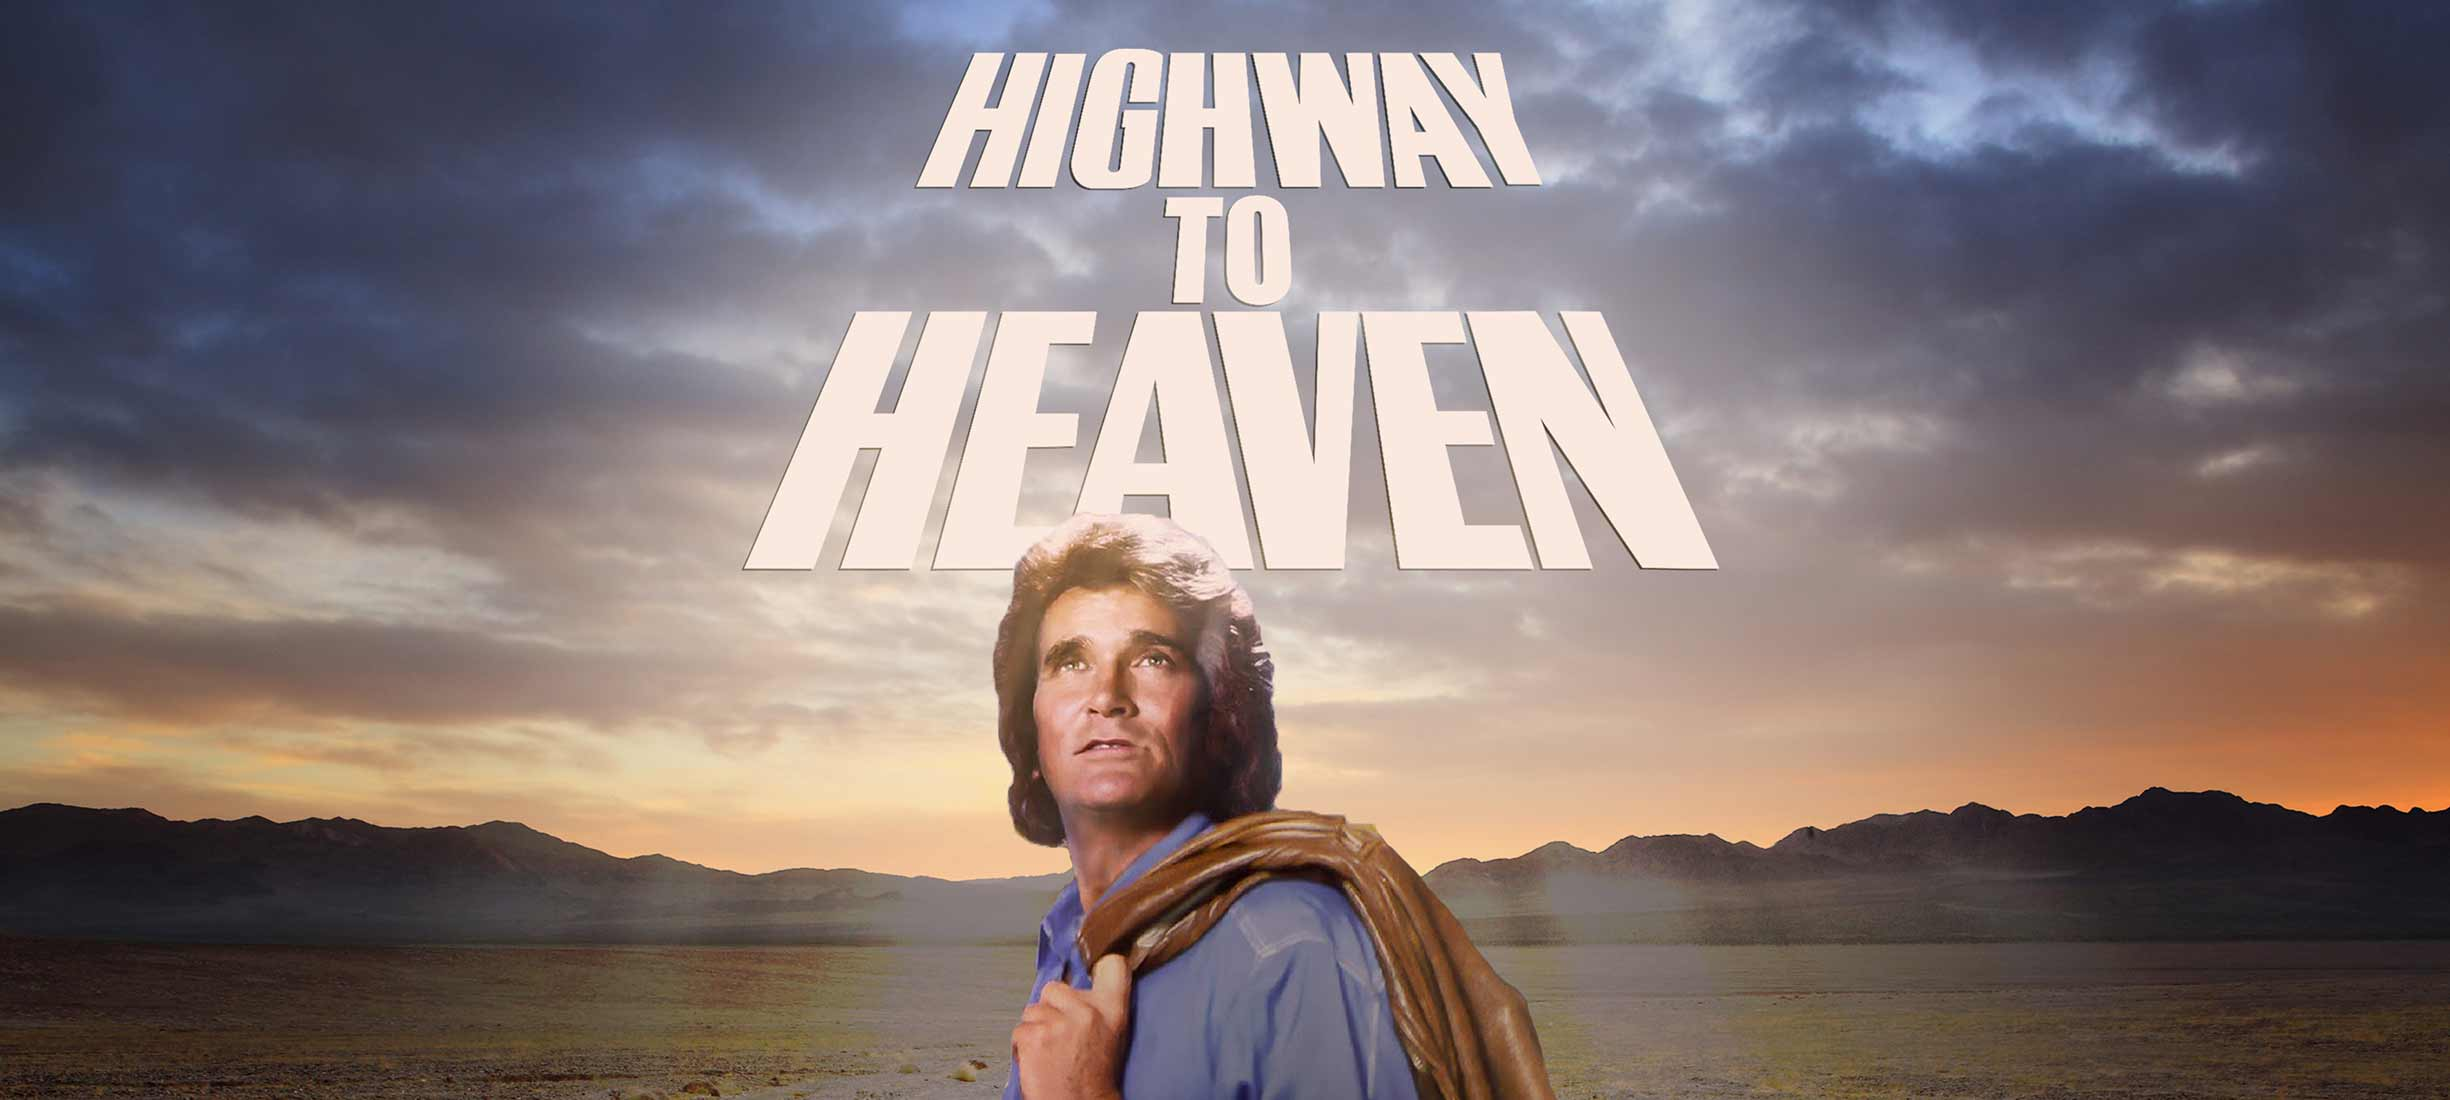 24 Movie Online Watch Highway To Heaven